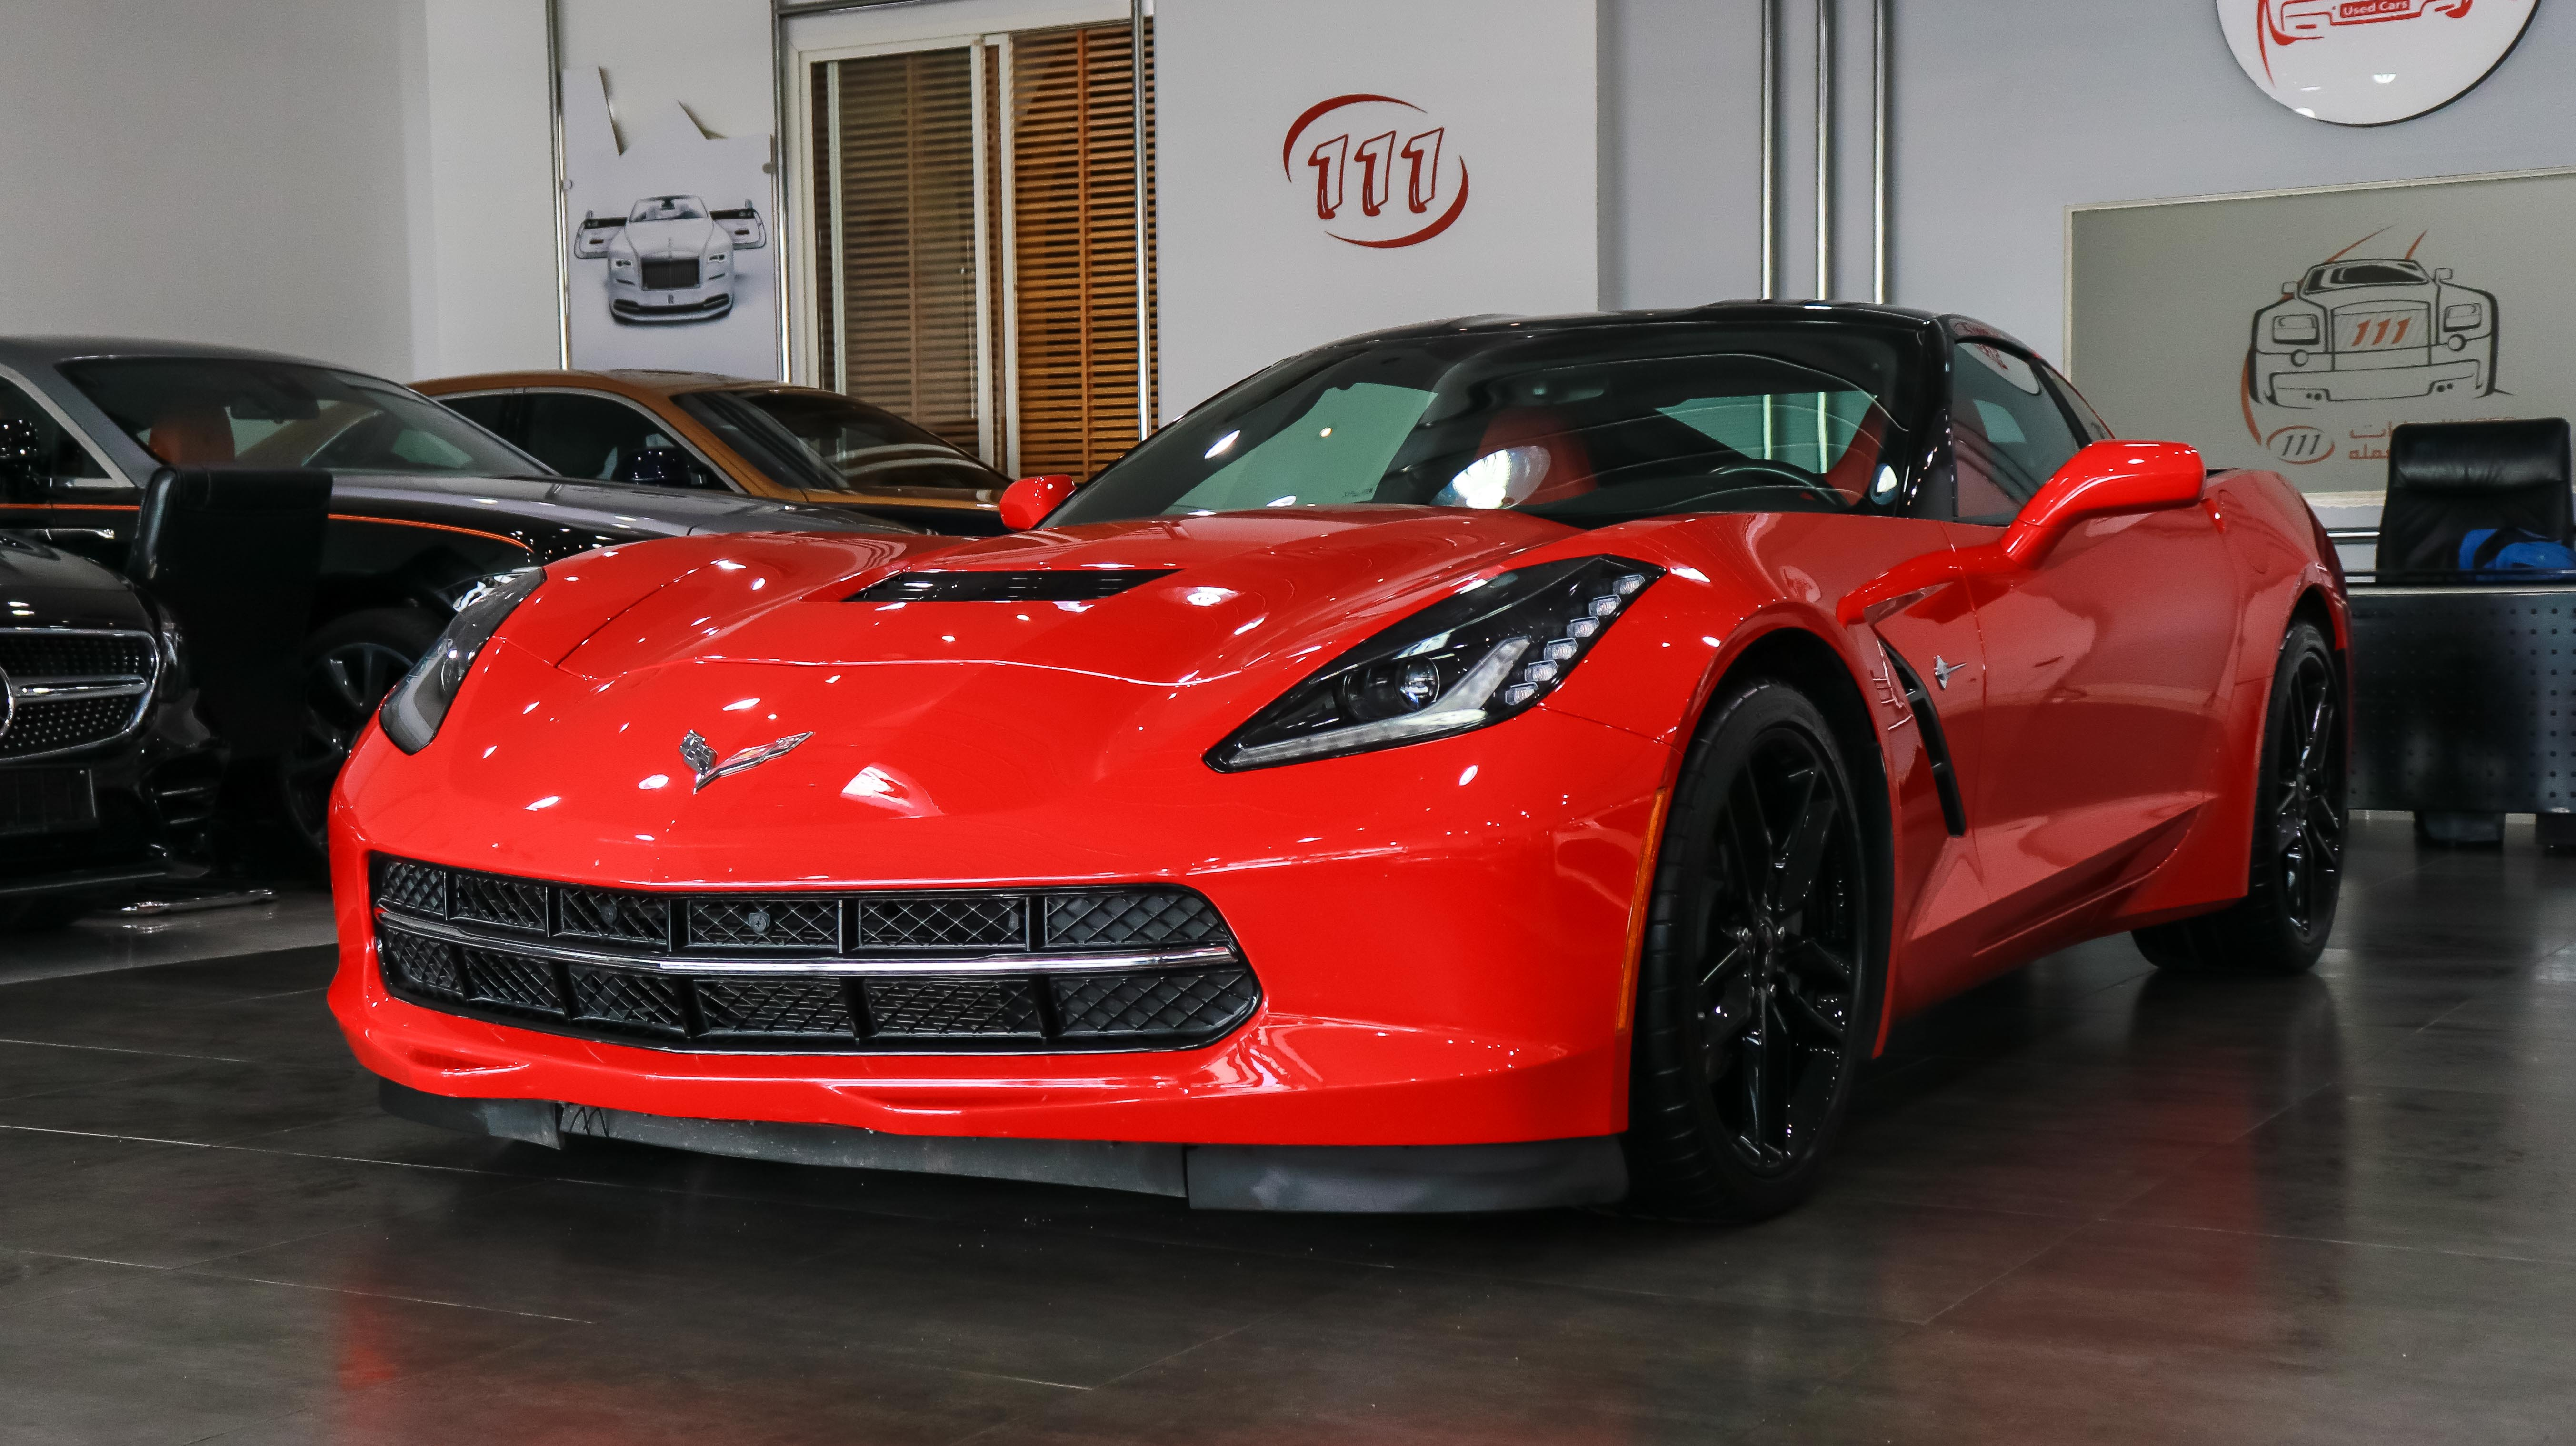 2019-Chevrolet-Corvette-Stingray-6.2-L-V8-Red-Red-import-01.jpg